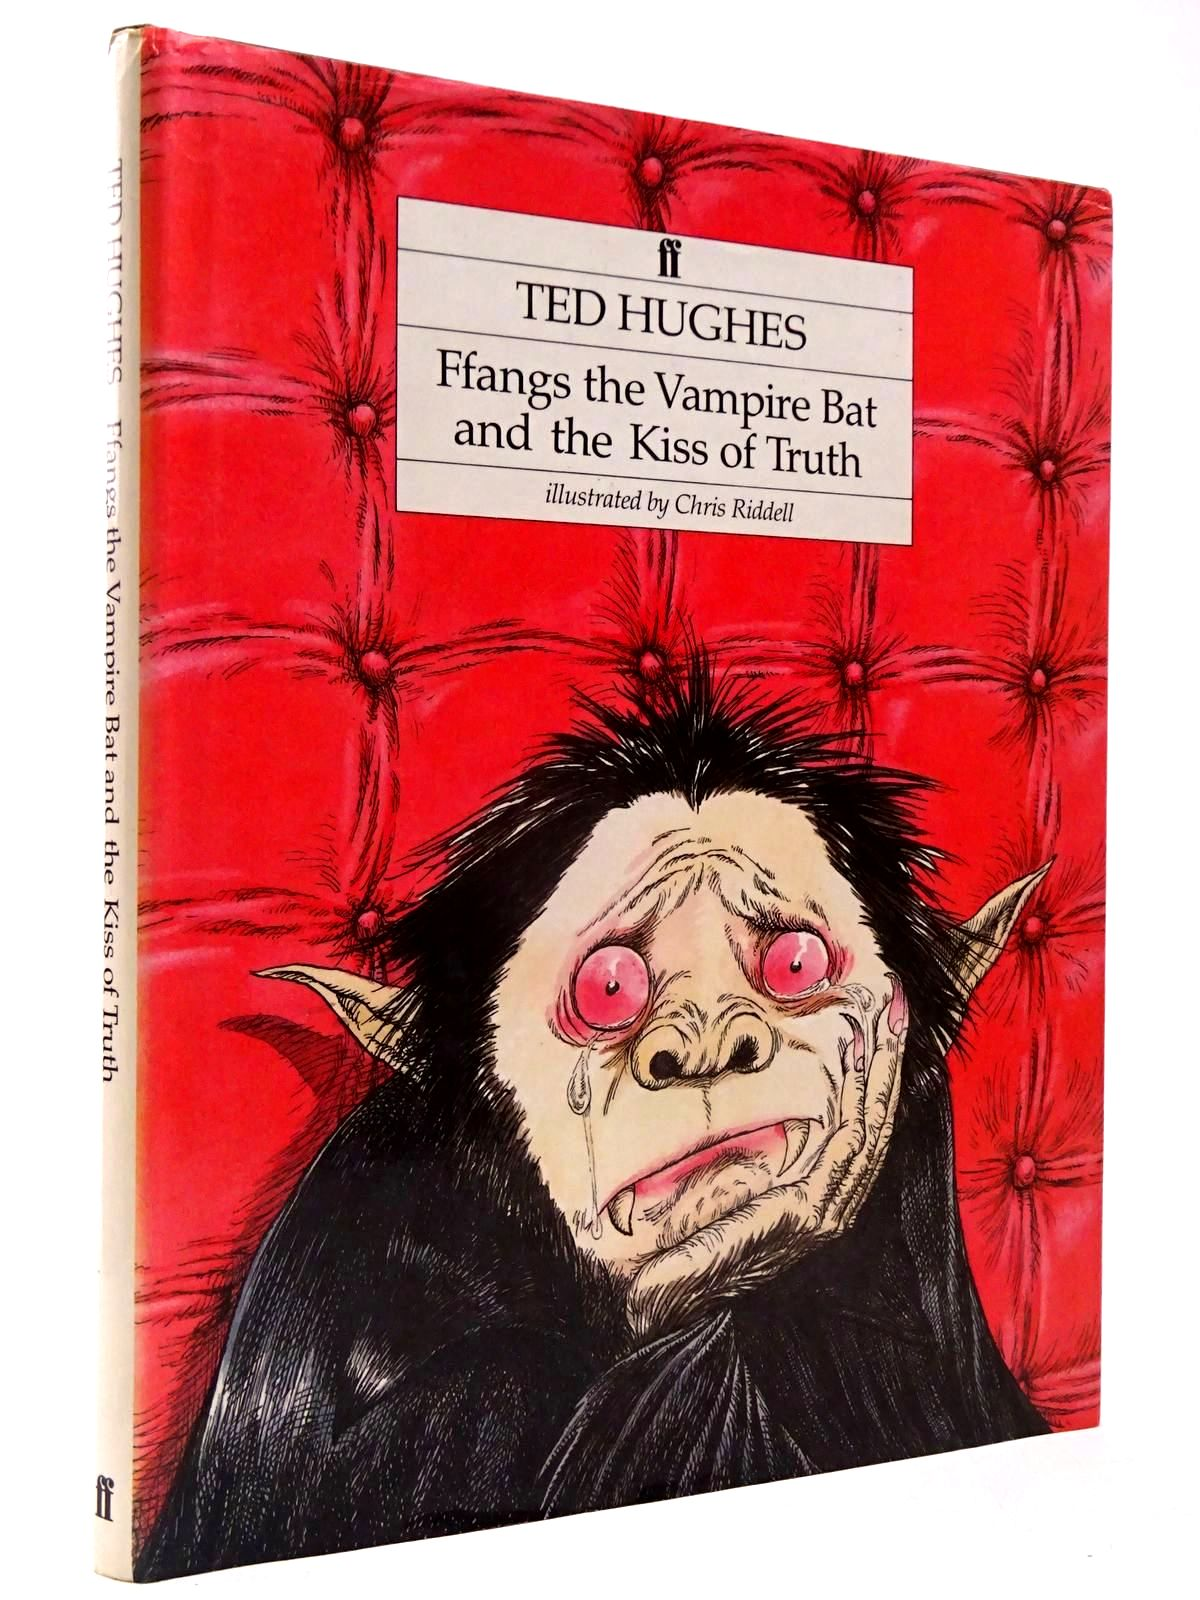 Photo of FFANGS THE VAMPIRE BAT AND THE KISS OF TRUTH written by Hughes, Ted illustrated by Riddell, Chris published by Faber & Faber (STOCK CODE: 2130342)  for sale by Stella & Rose's Books